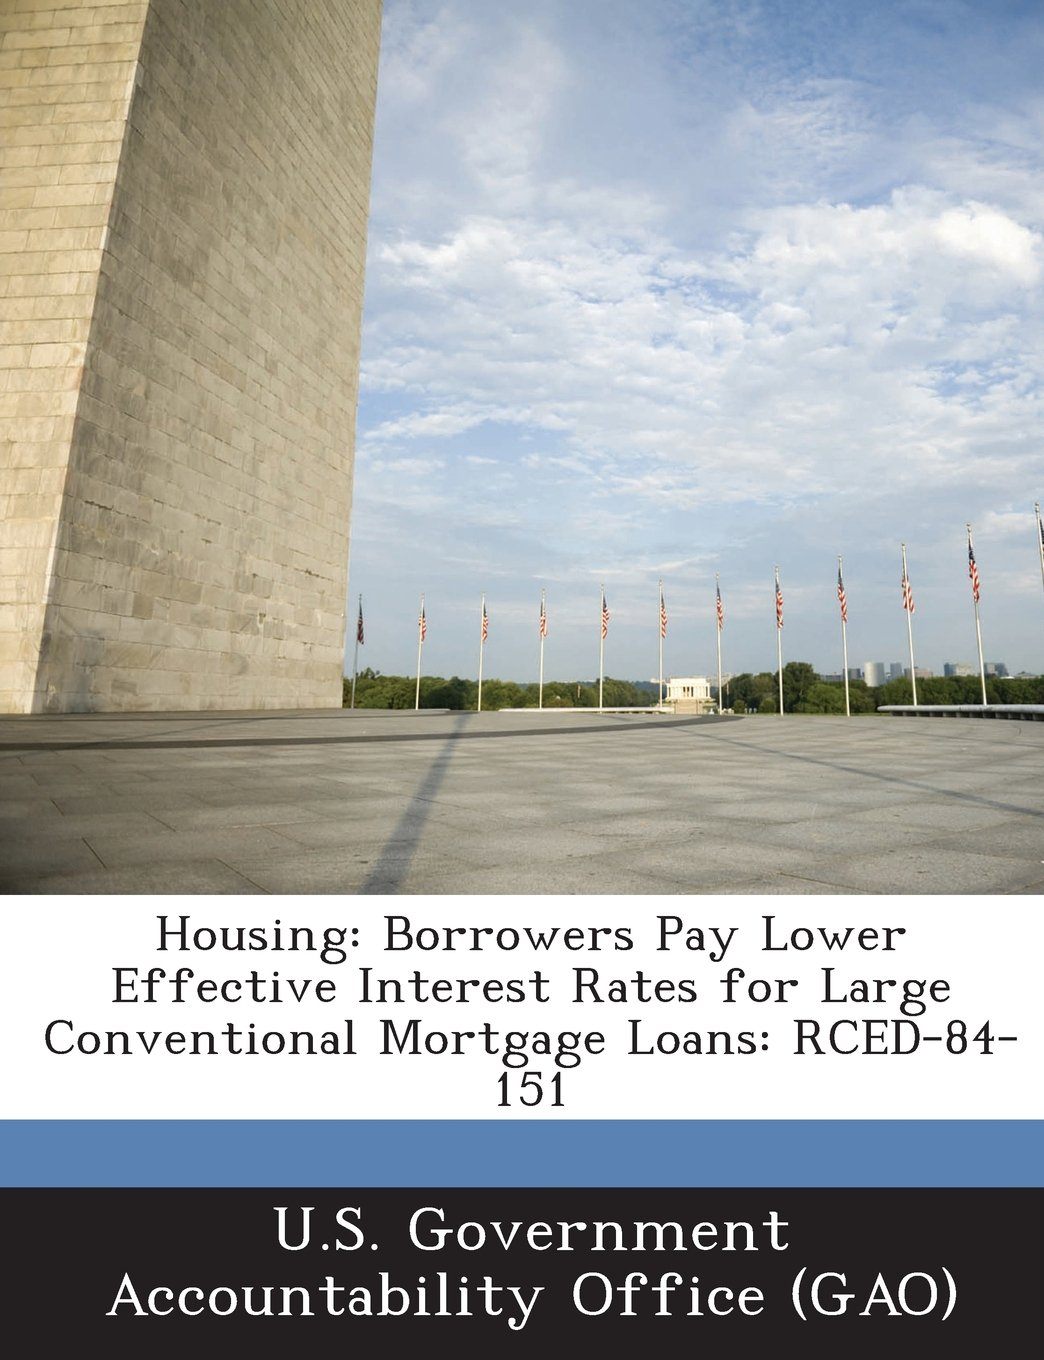 Housing: Borrowers Pay Lower Effective Interest Rates for Large Conventional Mortgage Loans: Rced-84-151 PDF ePub fb2 book